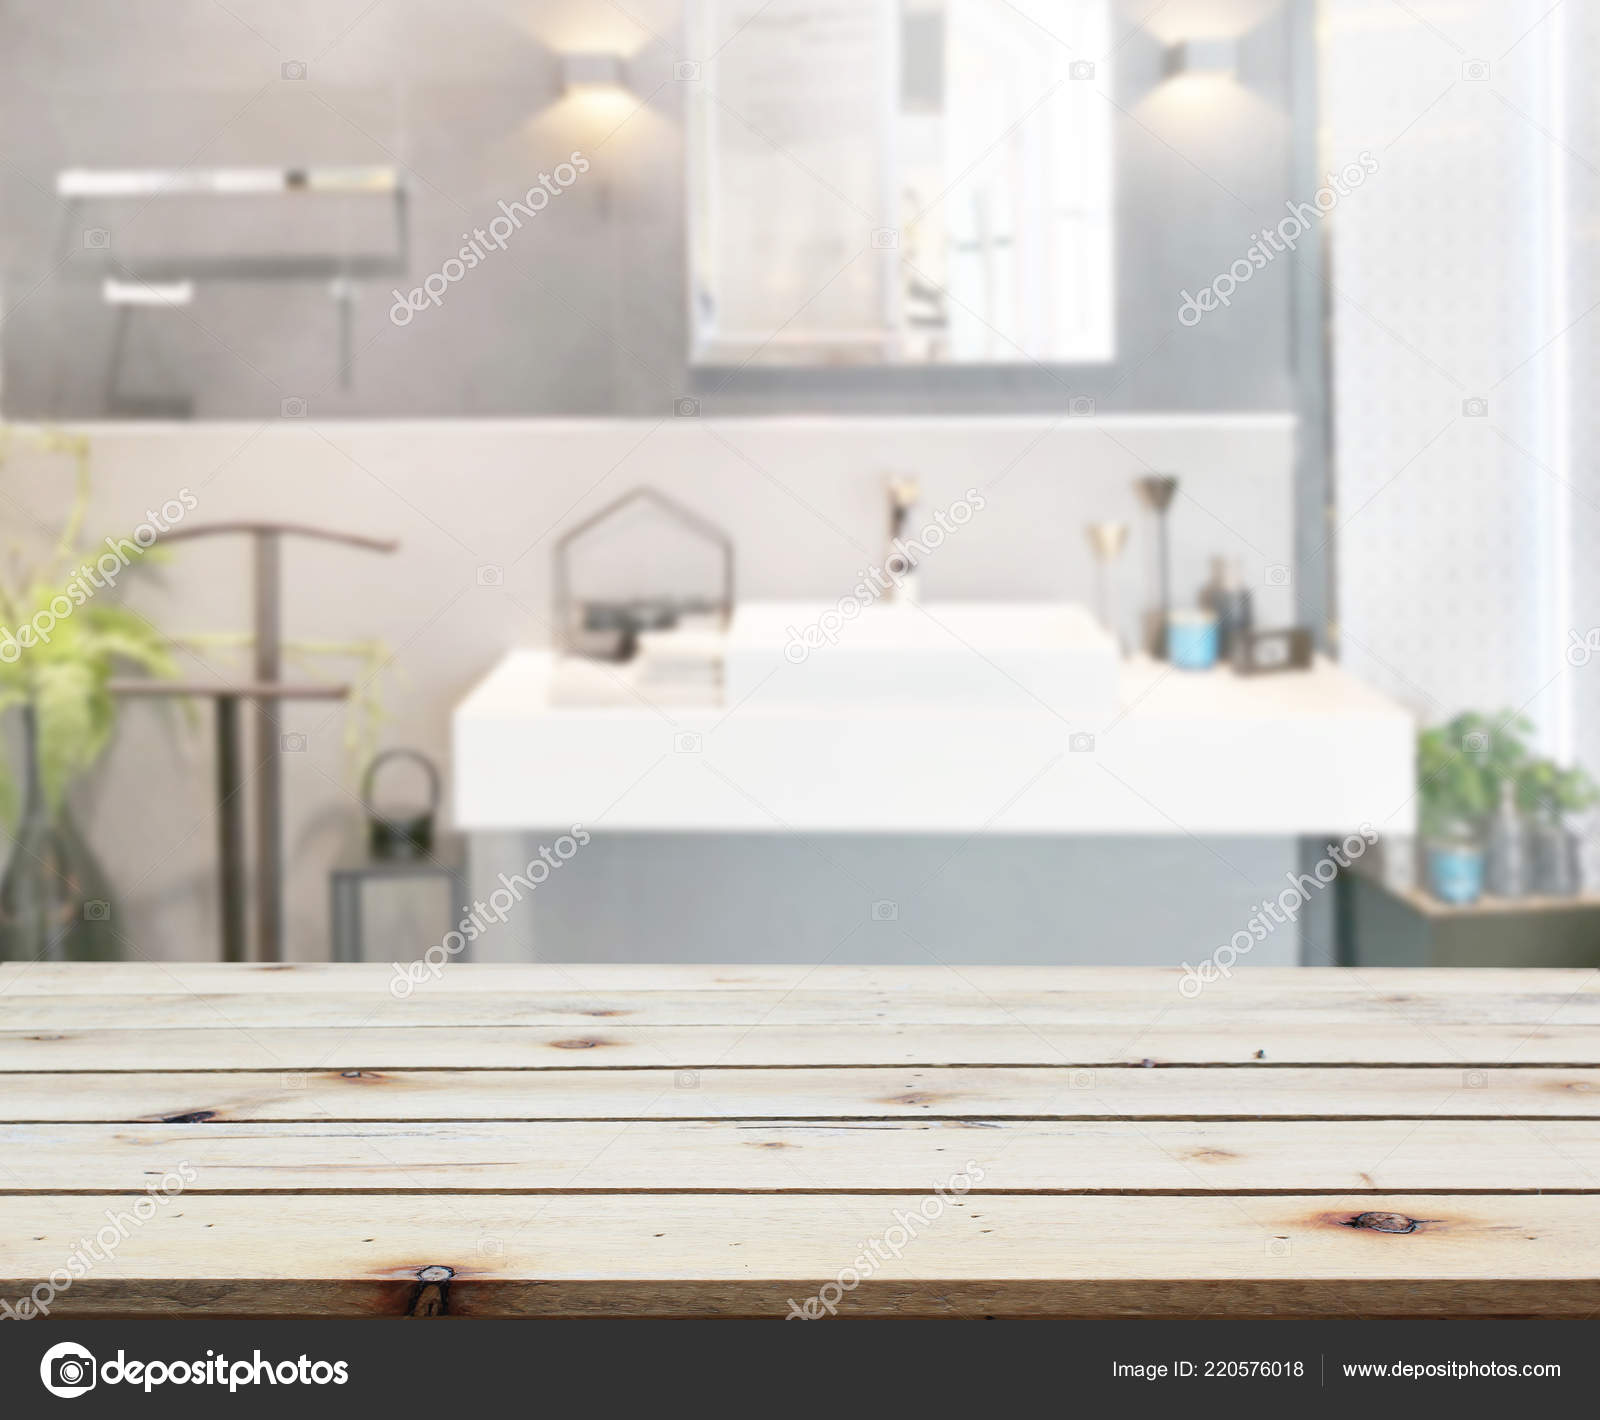 Table Top Blur Bathroom Background Stock Photo C Nuttapoldpspt